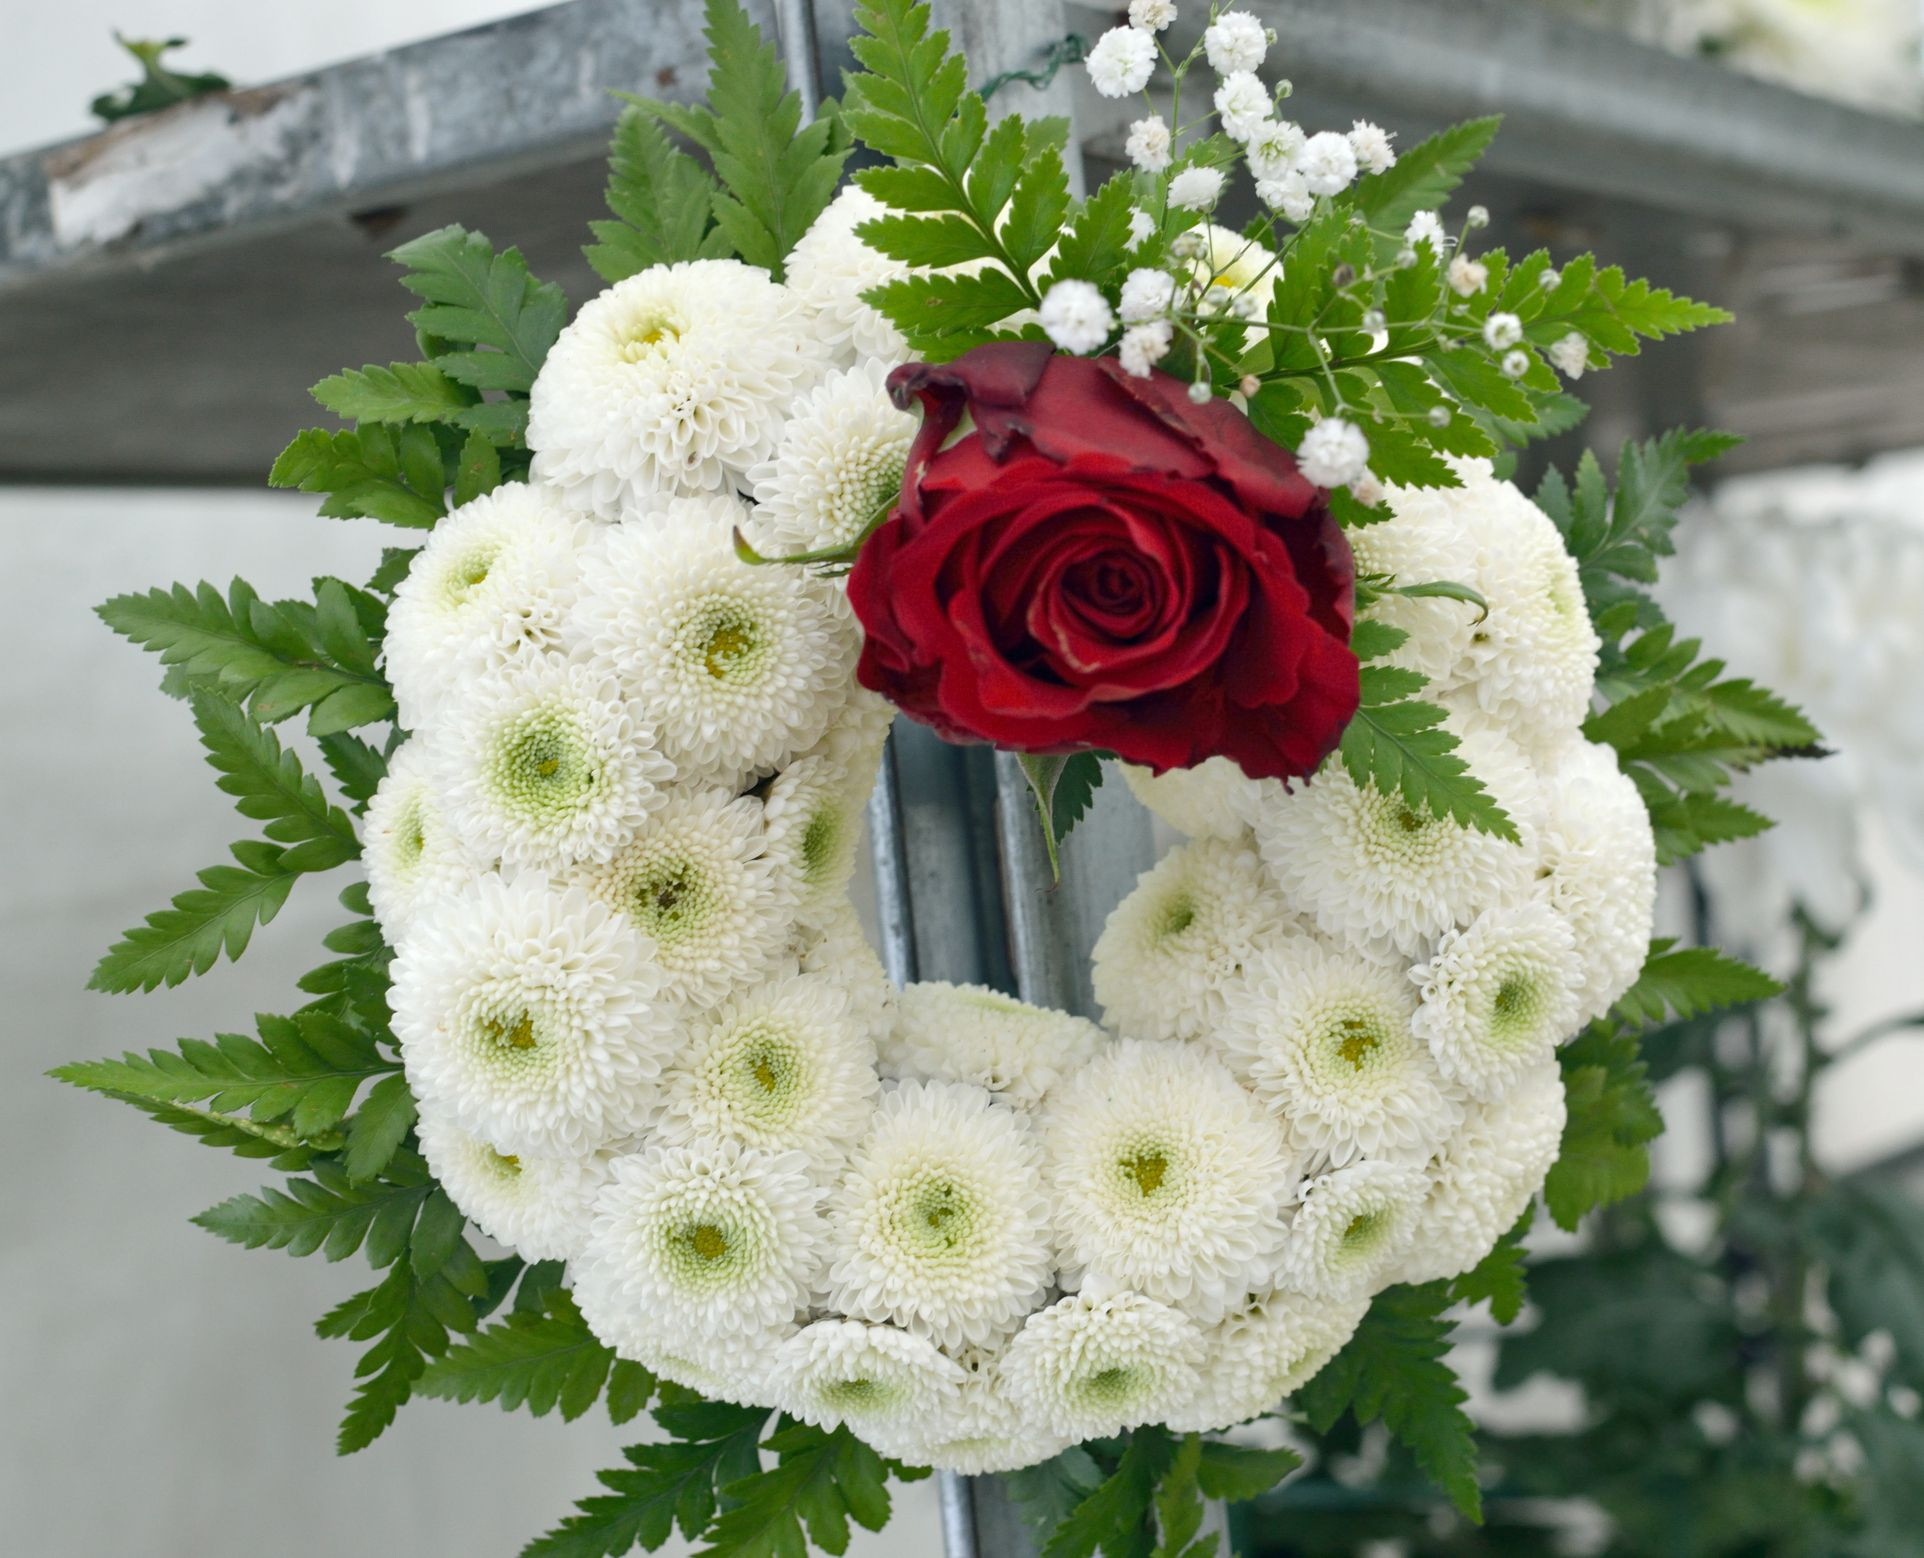 silk flowers for grave vases of proper etiquette for sending funeral flowers intended for funeralwreath gettyimages 591655301 5a3edccc5b6e240037ffc773